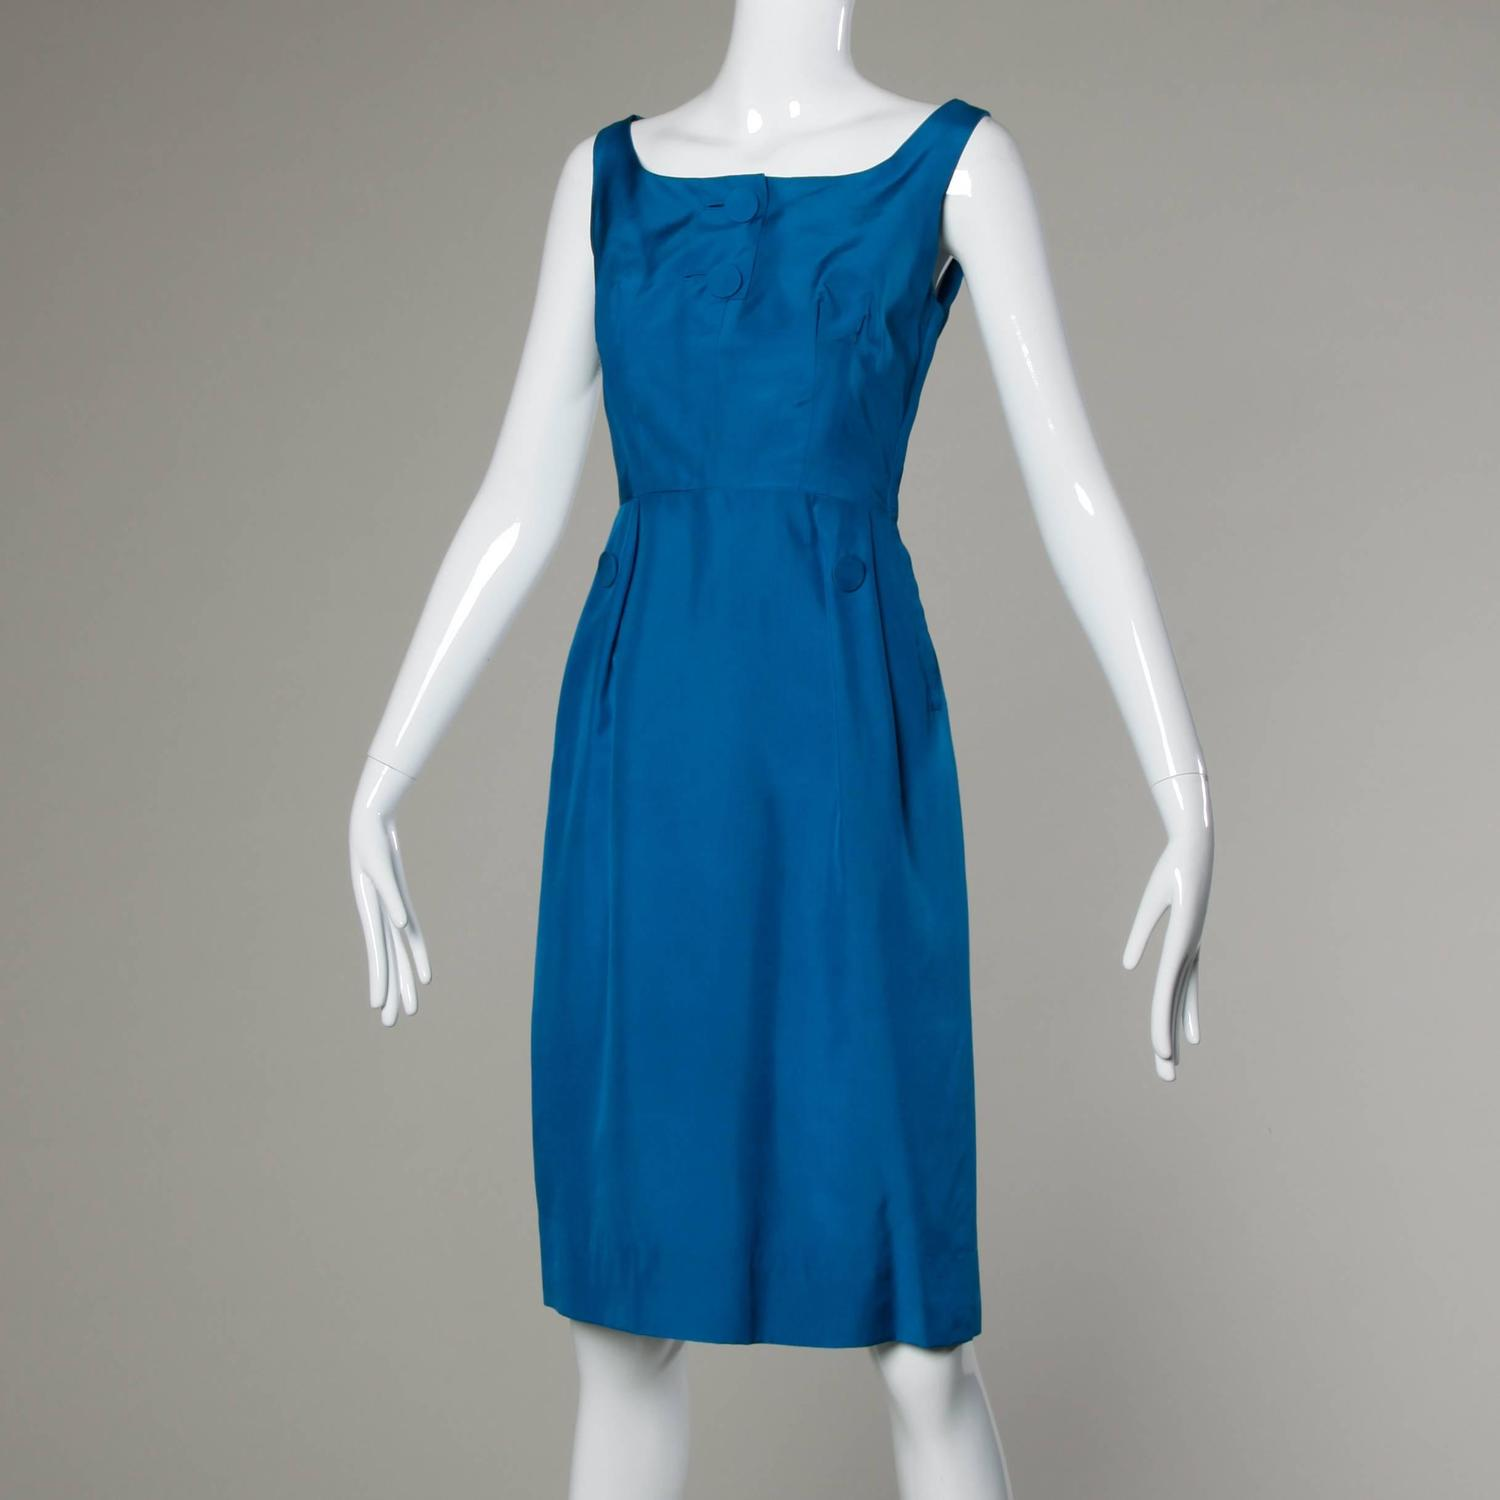 1950s Alfred Shaheen Vibrant Blue Silk Cocktail Dress For ...